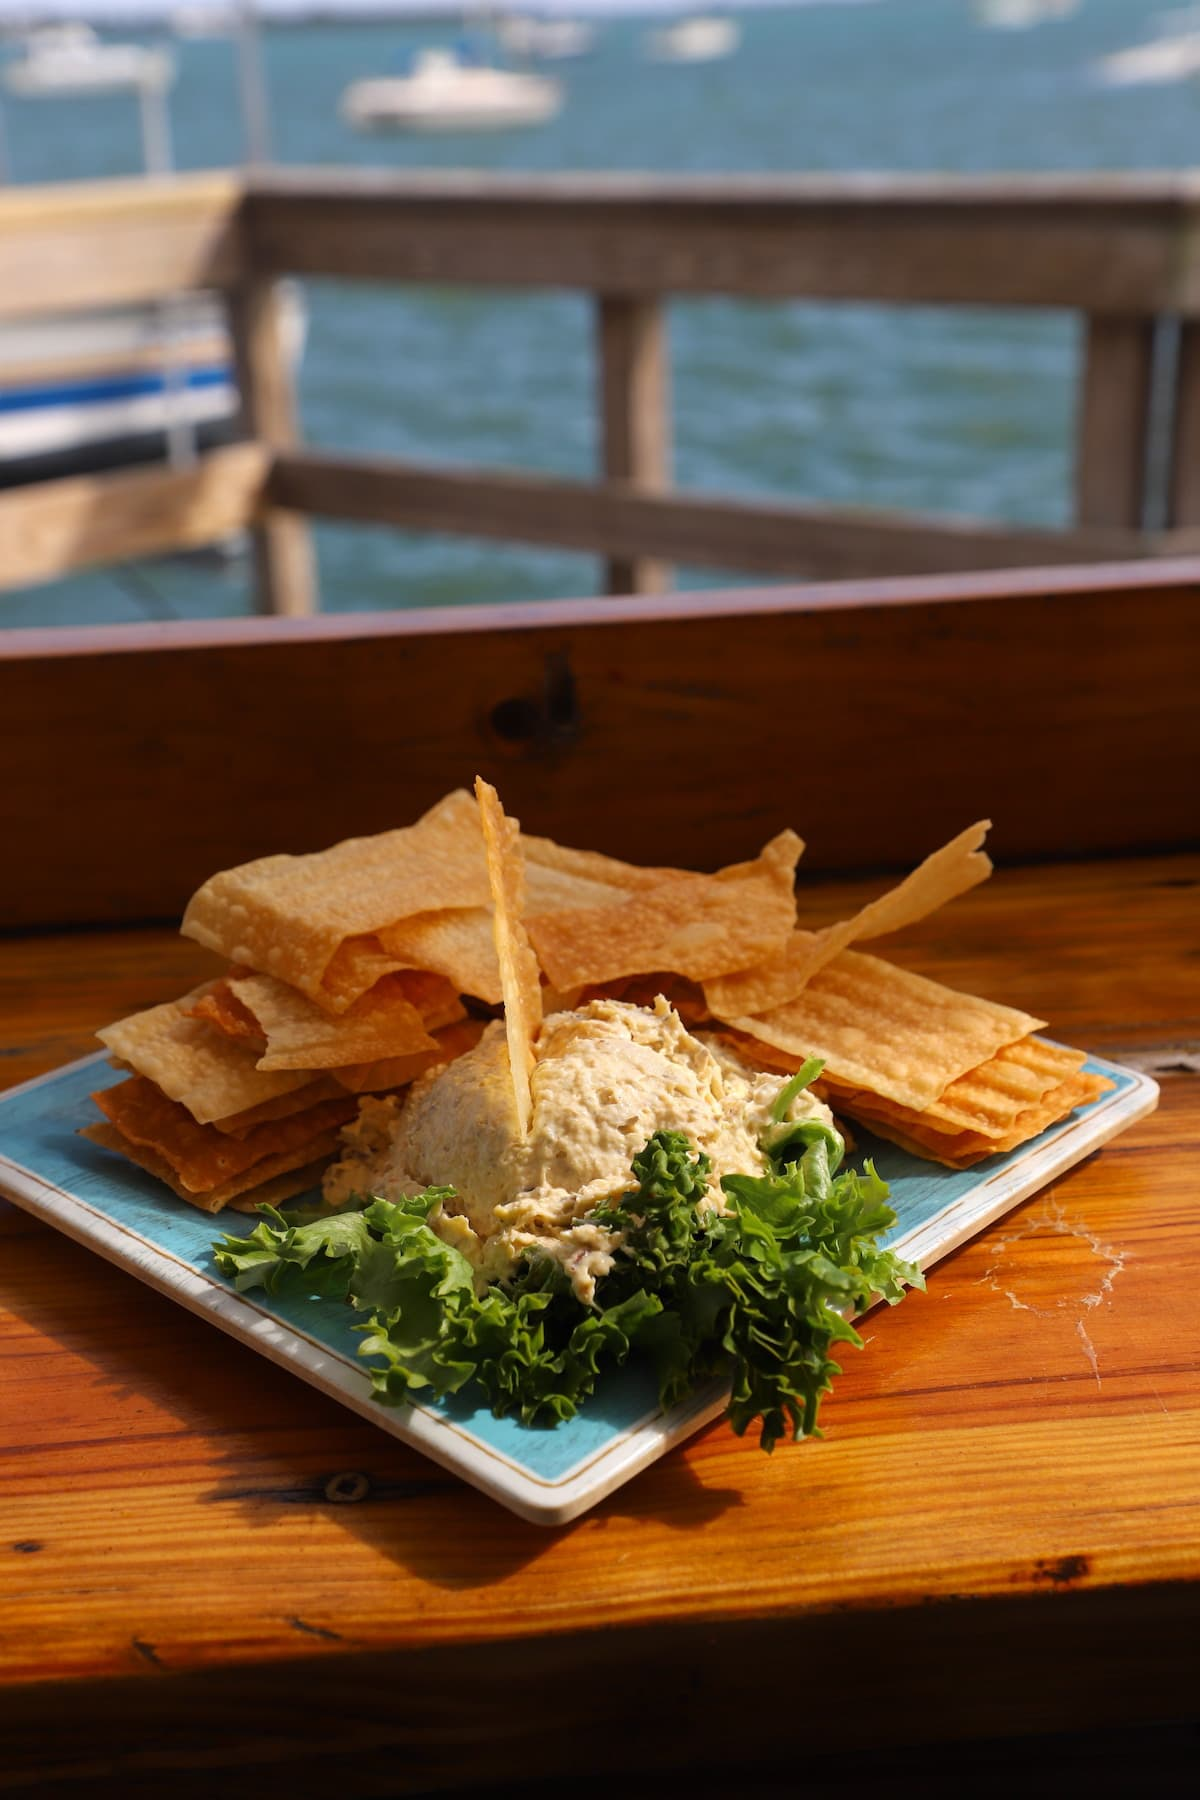 Eating the fish dip at AMI Oyster bar is one of my favorite things to do on Anna Maria Island.